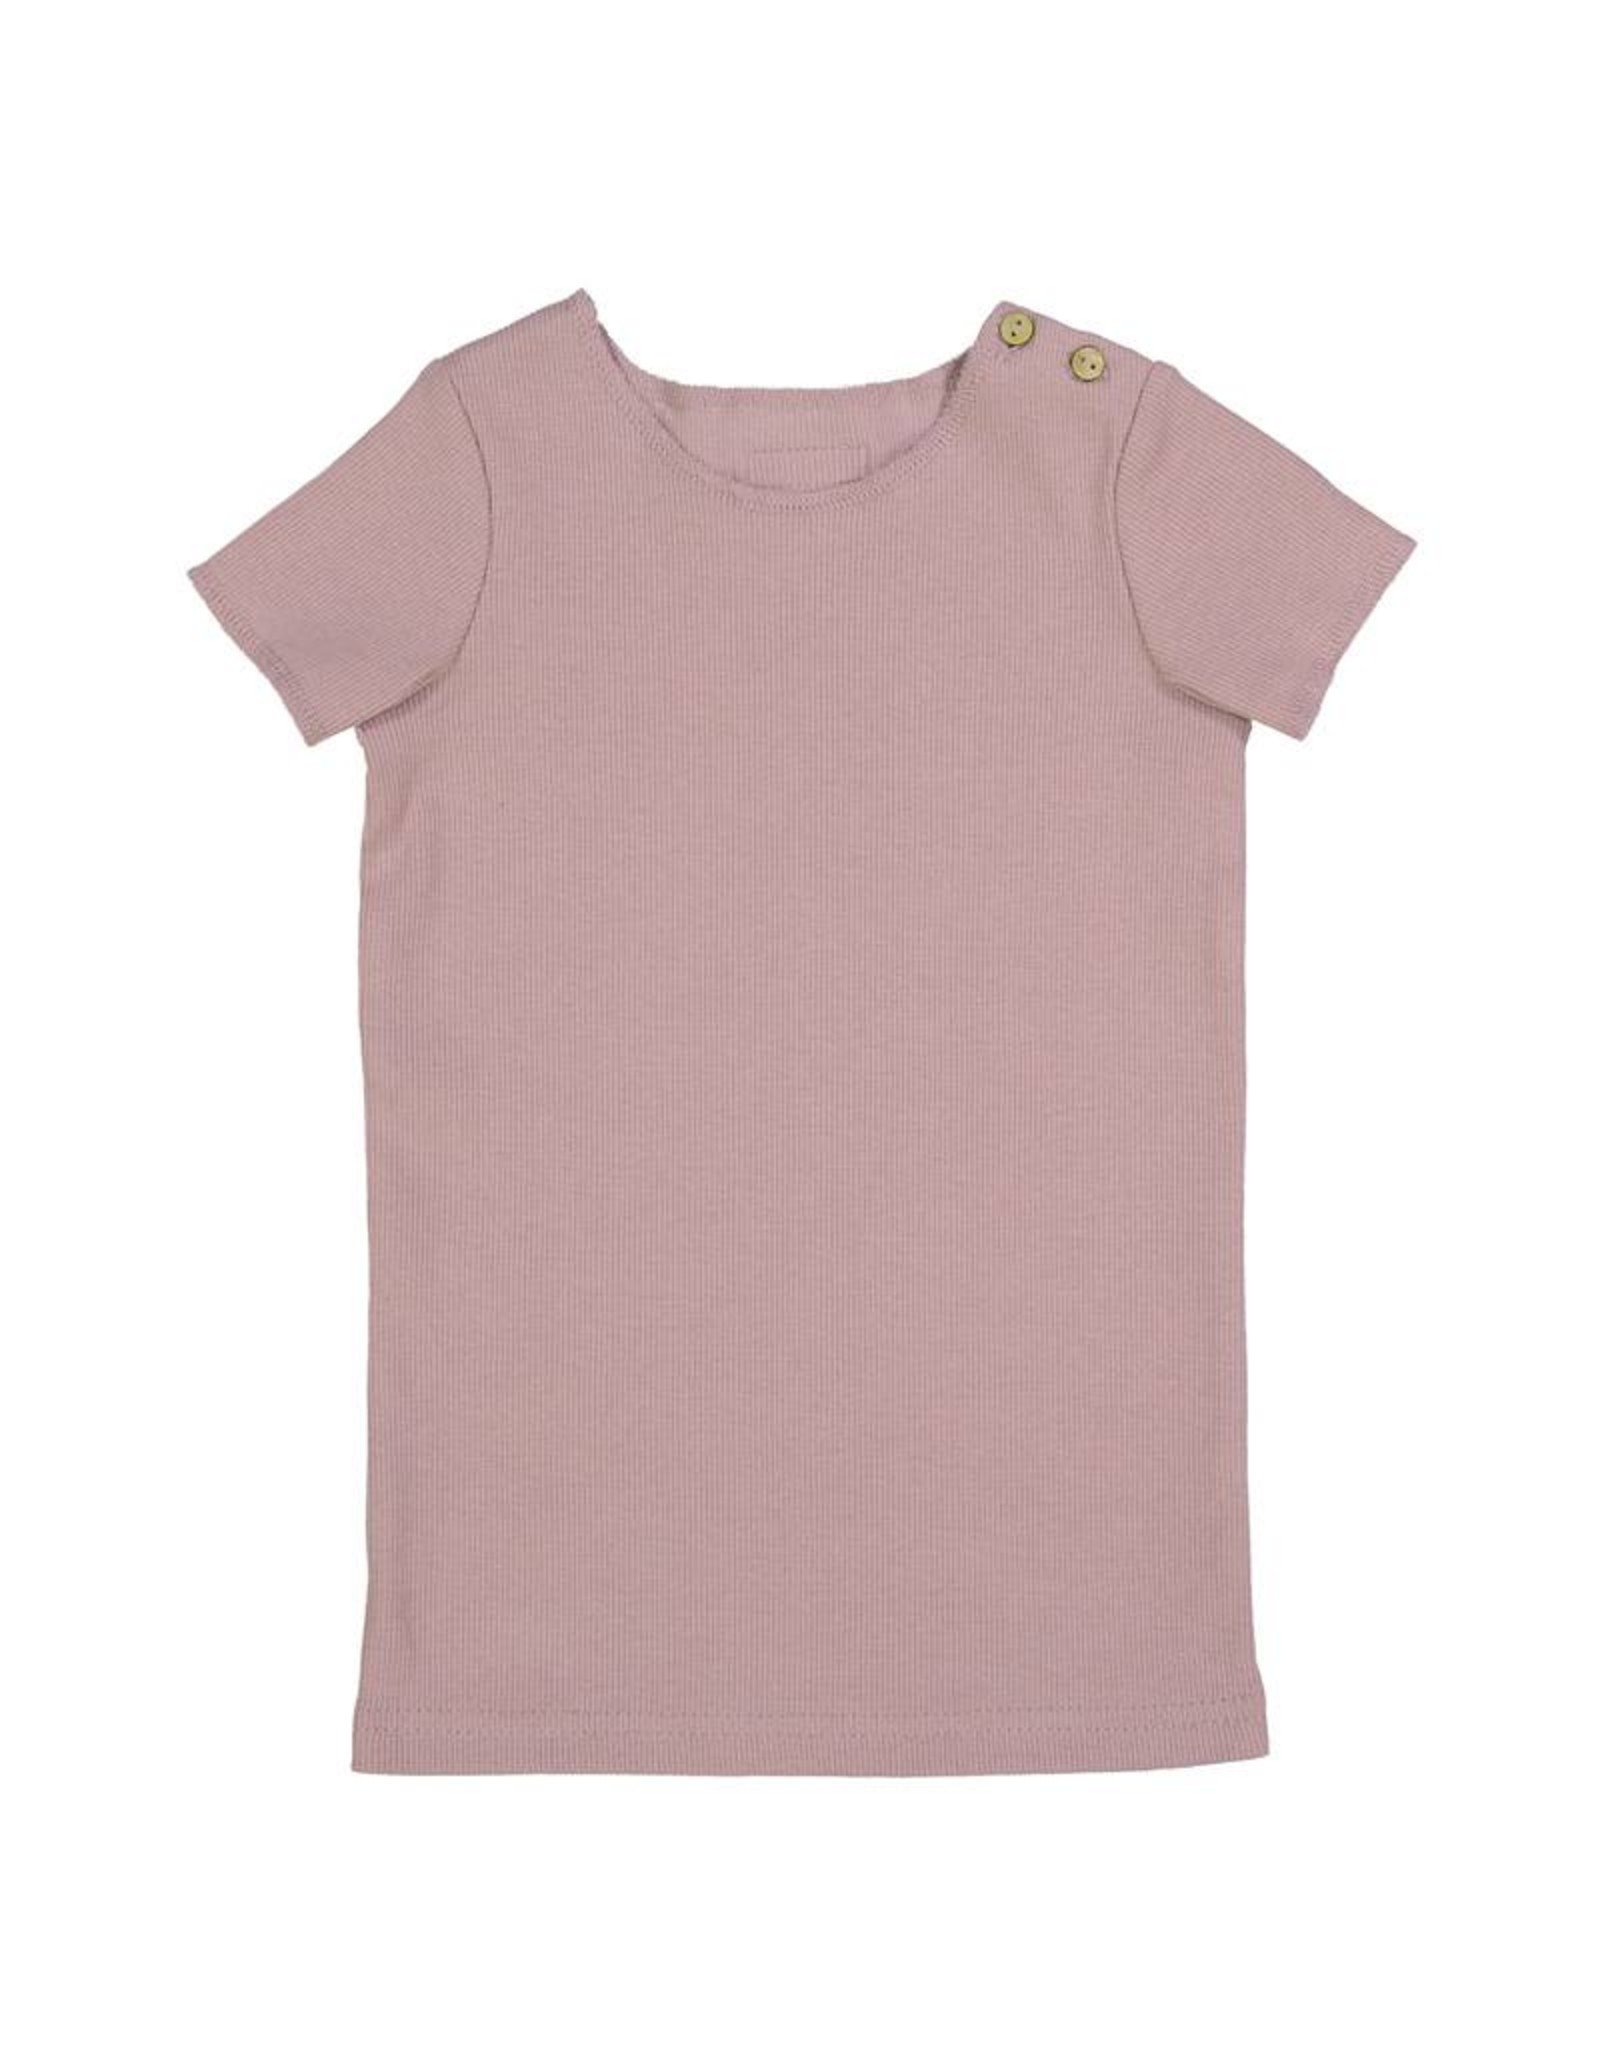 LIL LEGS Lil Legs SS19 Ribbed Tee Fashion Colors